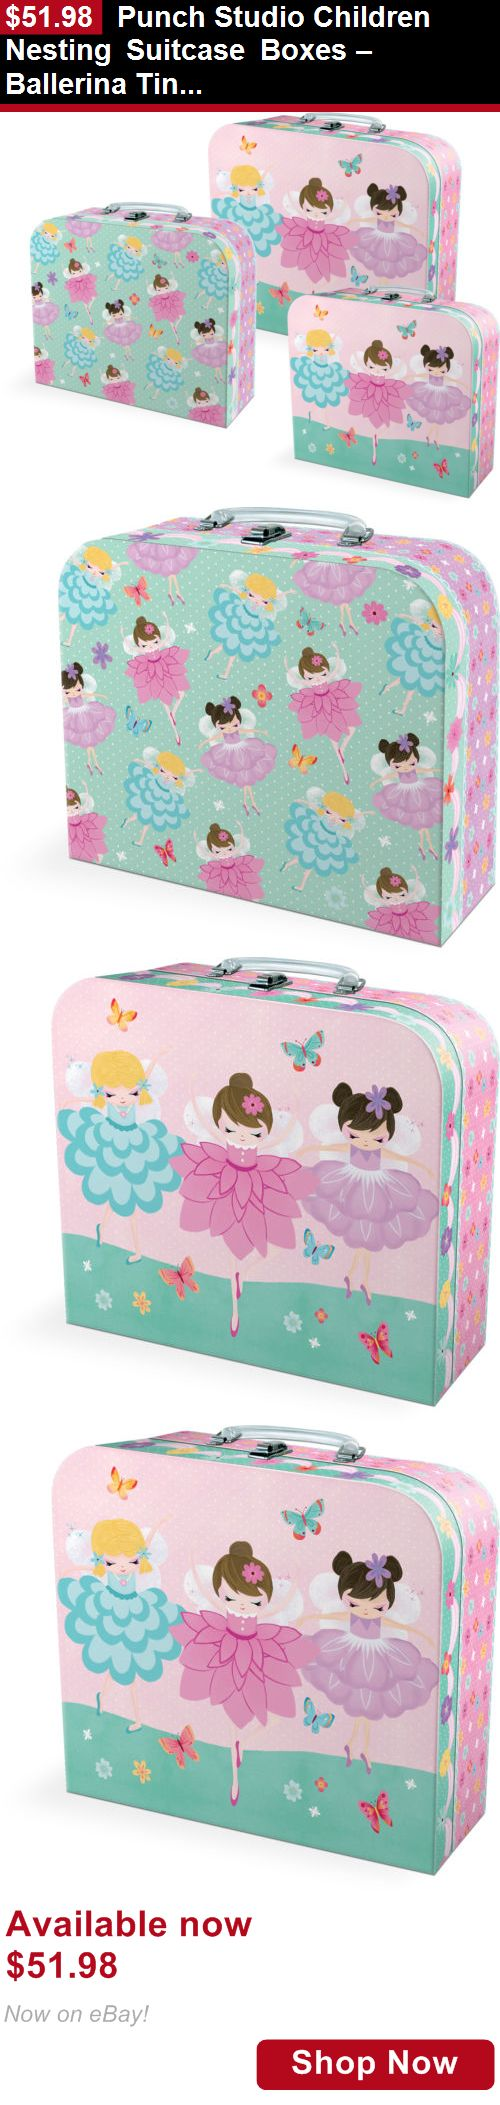 Baby Boxes And Storage: Punch Studio Children Nesting Suitcase Boxes – Ballerina Tiny Dancers 43304N BUY IT NOW ONLY: $51.98